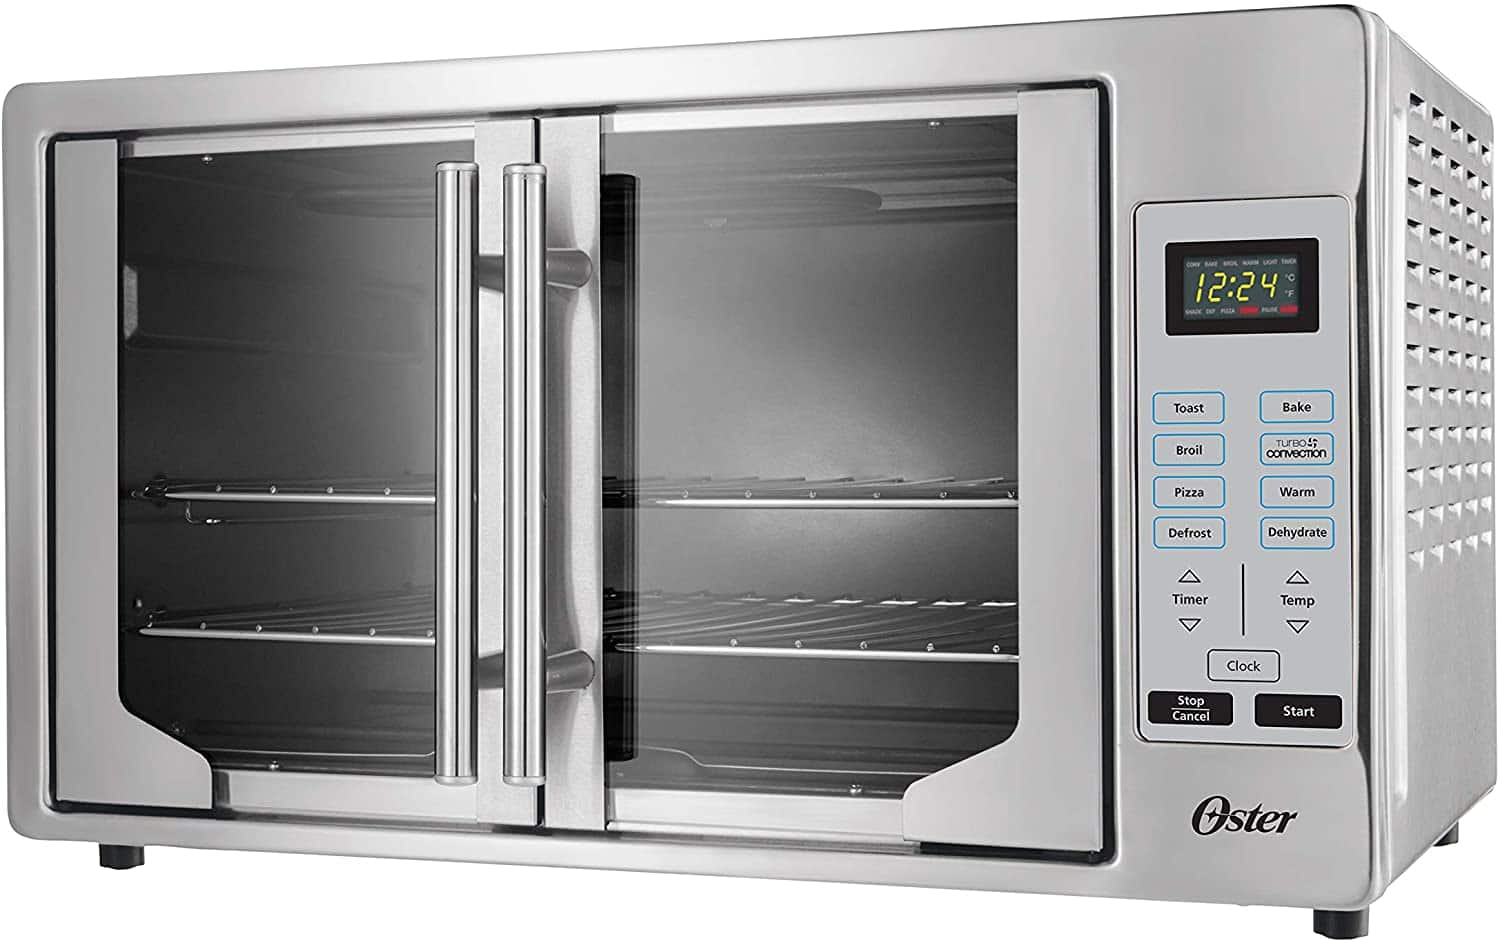 Oster French Convection Countertop and Toaster Oven | Single Door Pull and Digital Controls | Stainless Steel, Extra Large $111.99+F/S